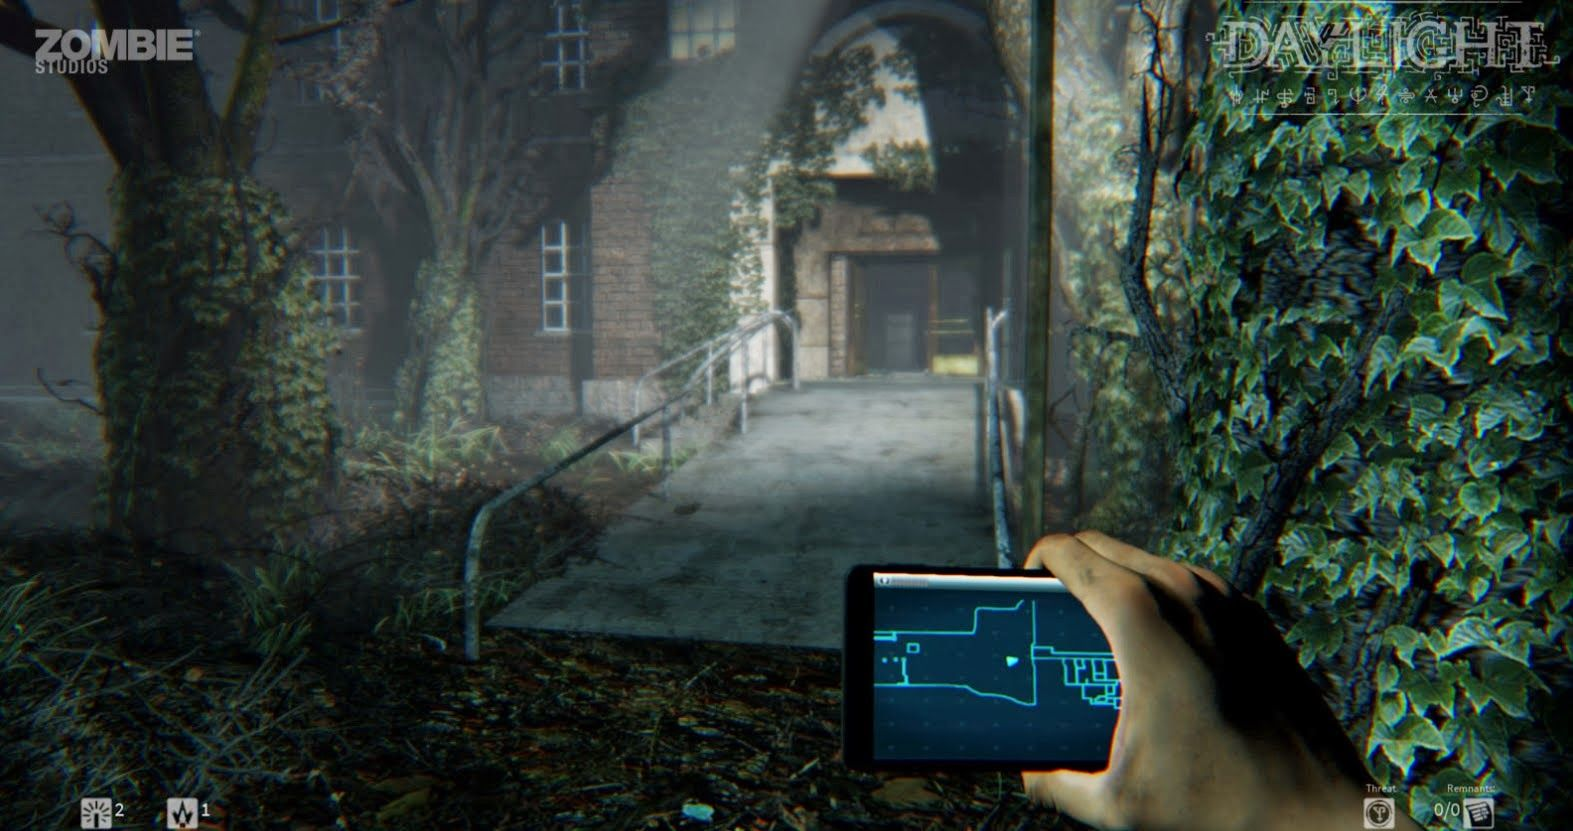 Daylight twitch viewers can interact with horror game